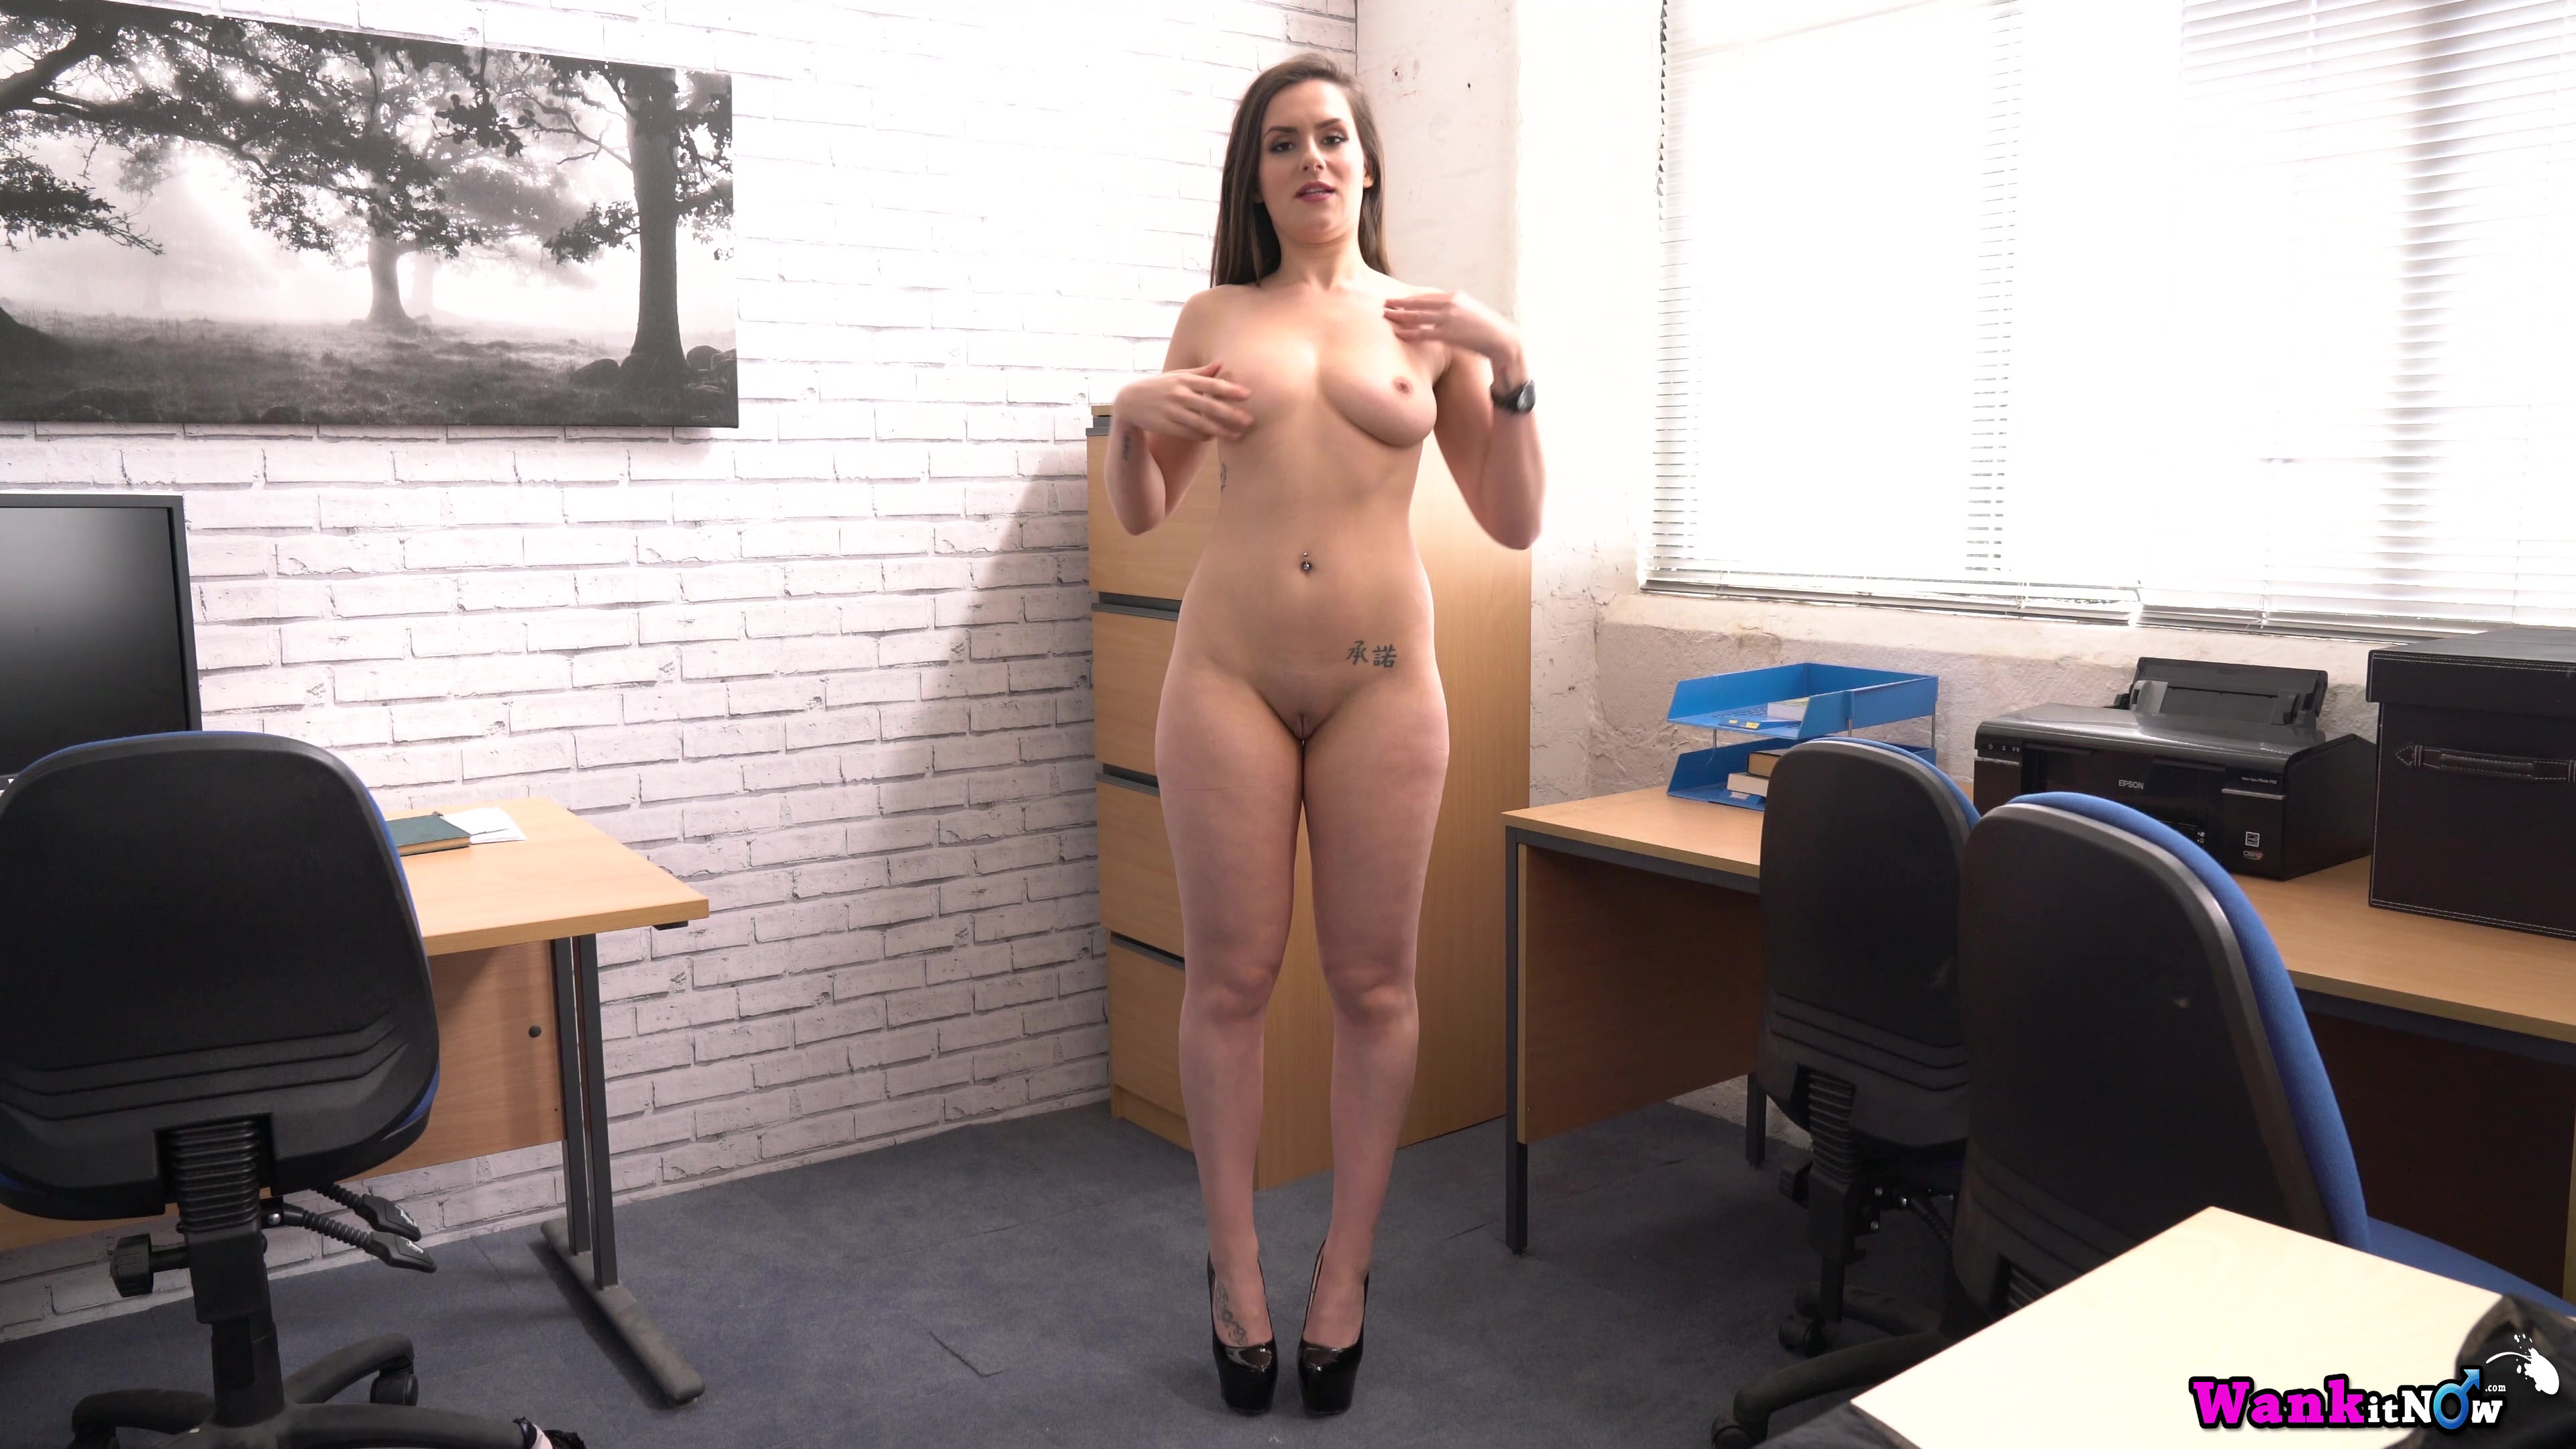 Girl in office stripping gallery porn, hot girl on wii fit